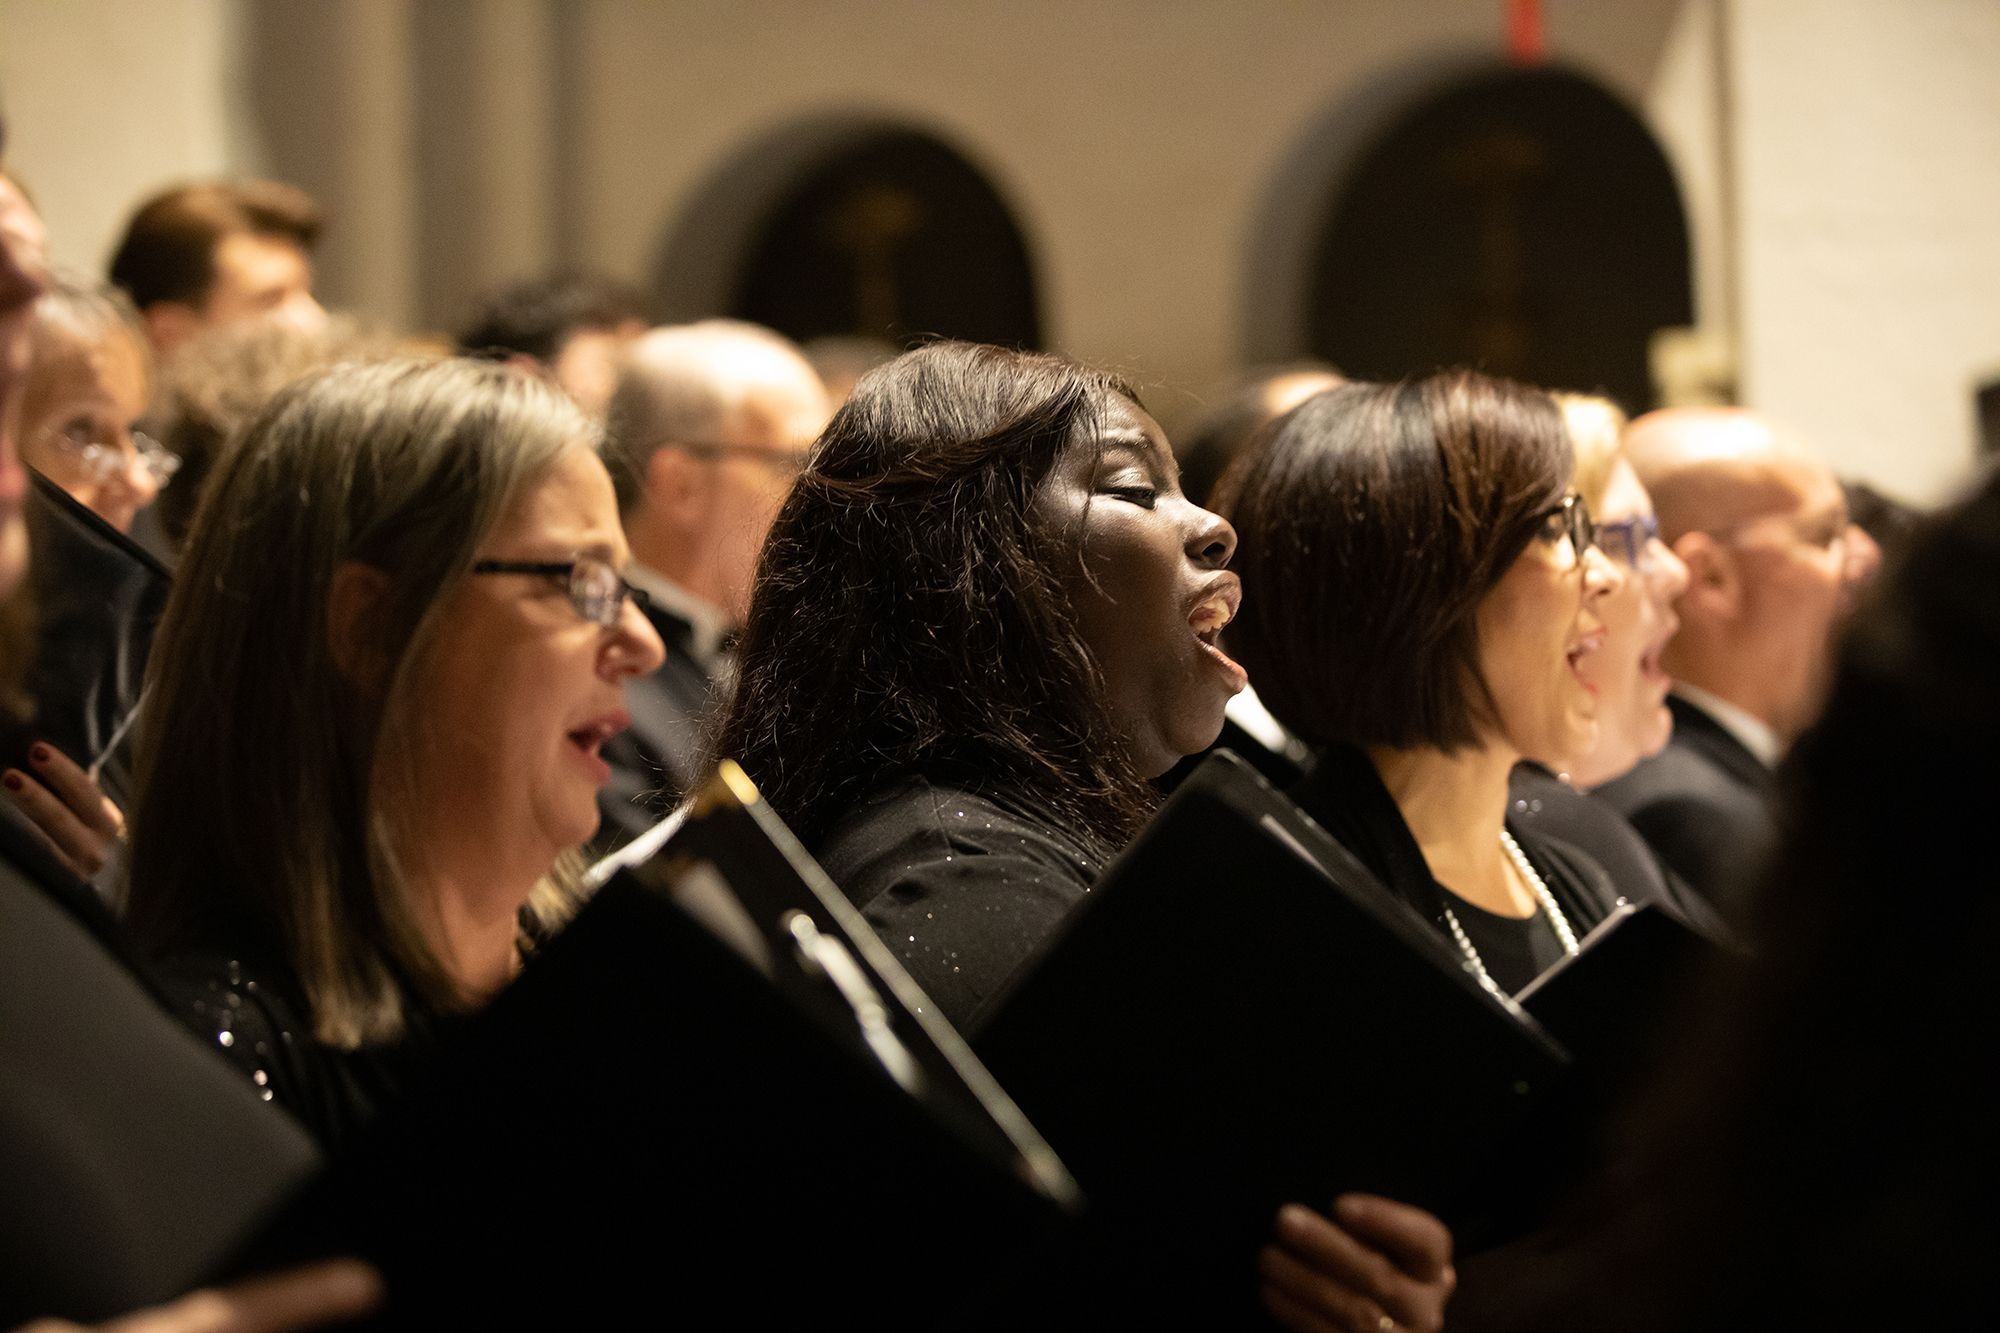 A choir singing during a performance at Knowles Chapel.